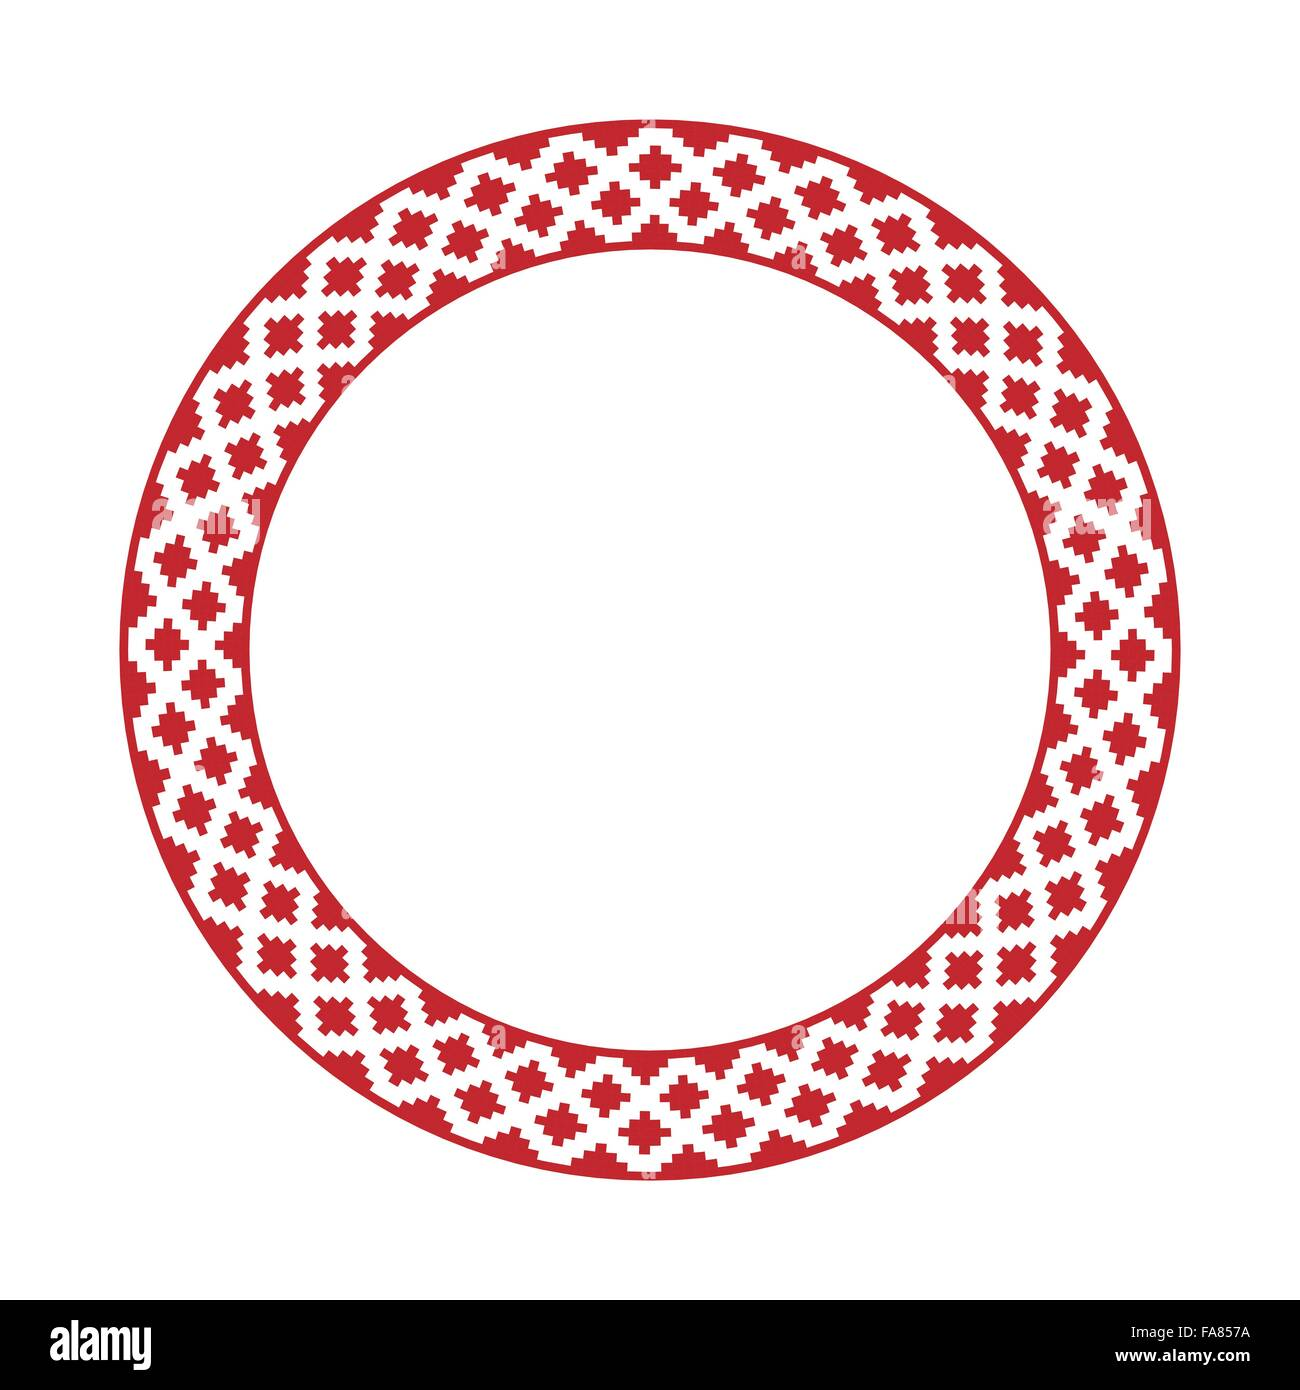 Vector illustration of traditional Slavic round embroidered pattern - Stock Image